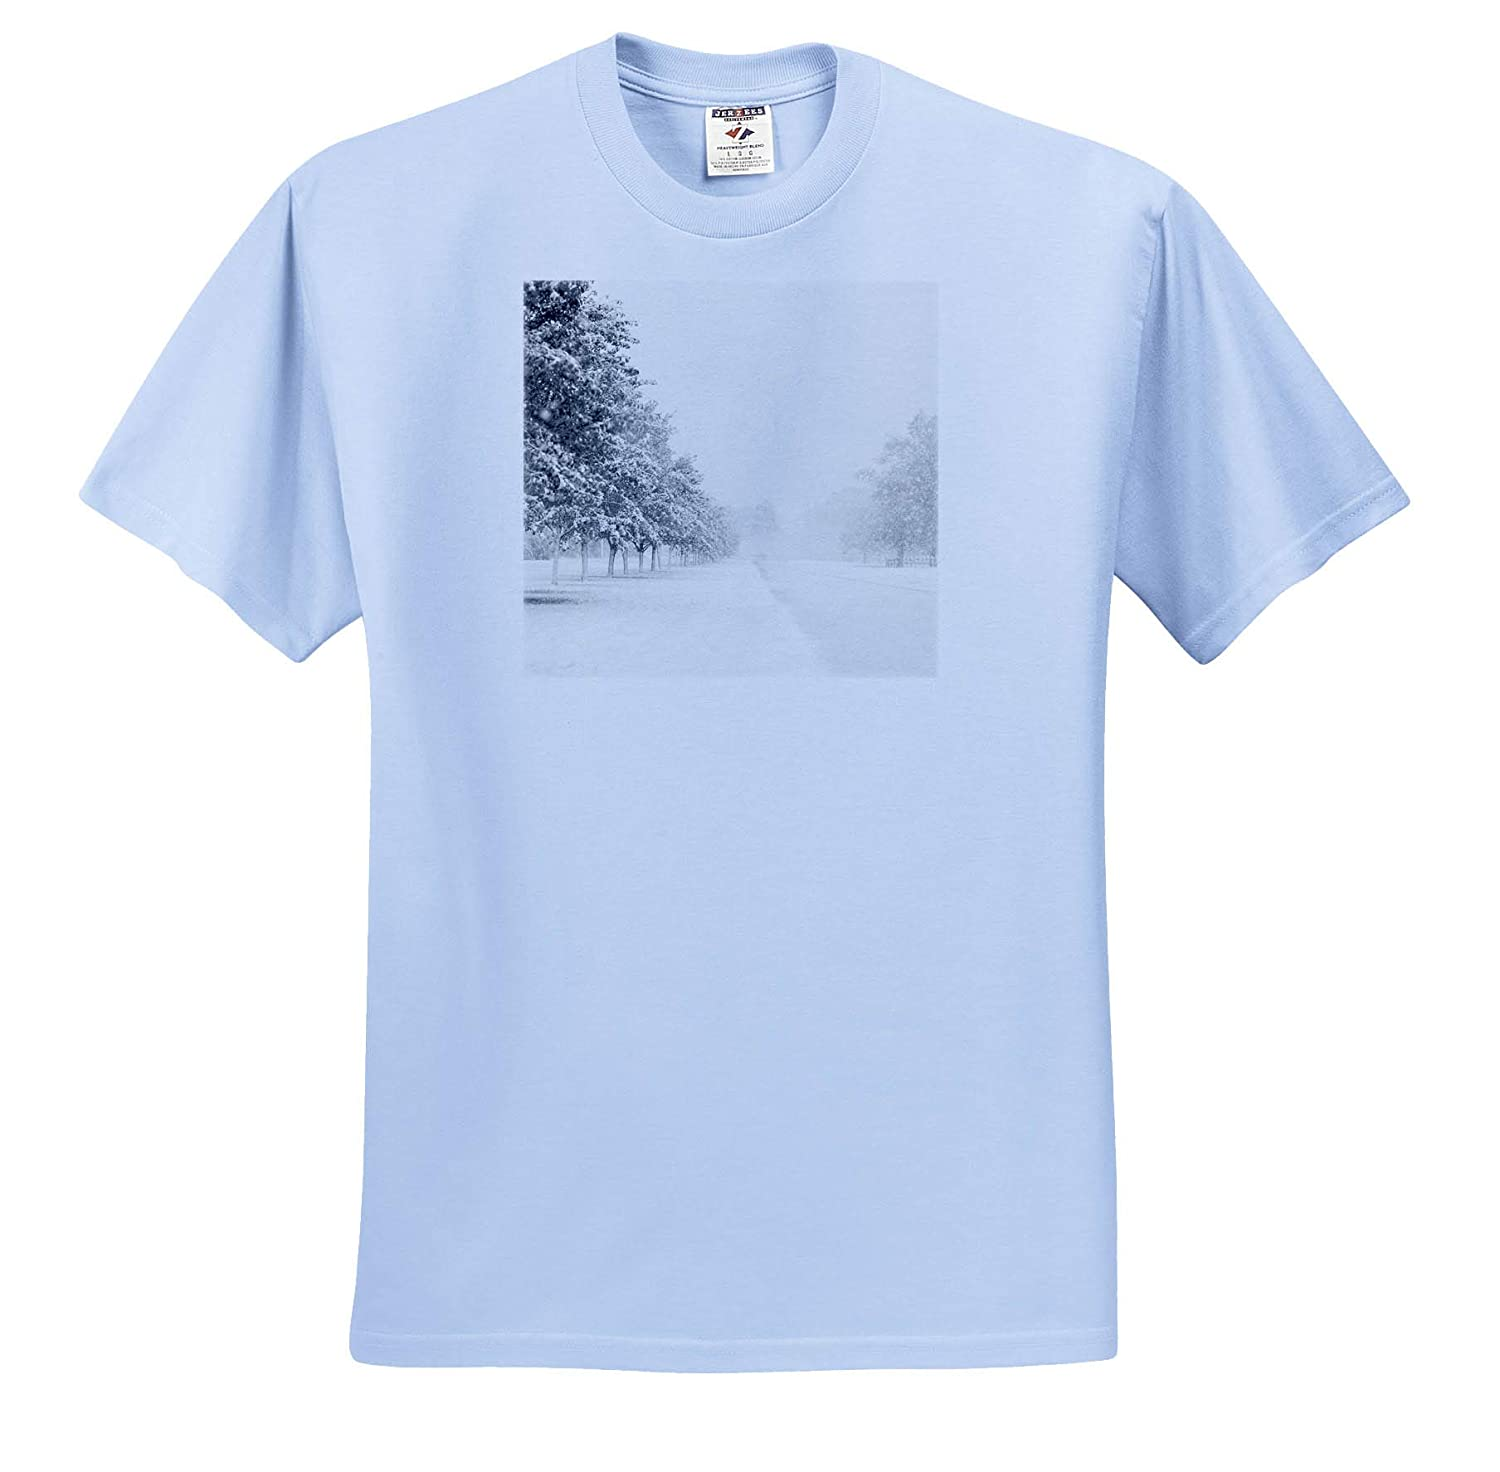 Photograph of a Road Lined with Trees with Freshly Fallen Snow Winter - T-Shirts 3dRose Stamp City